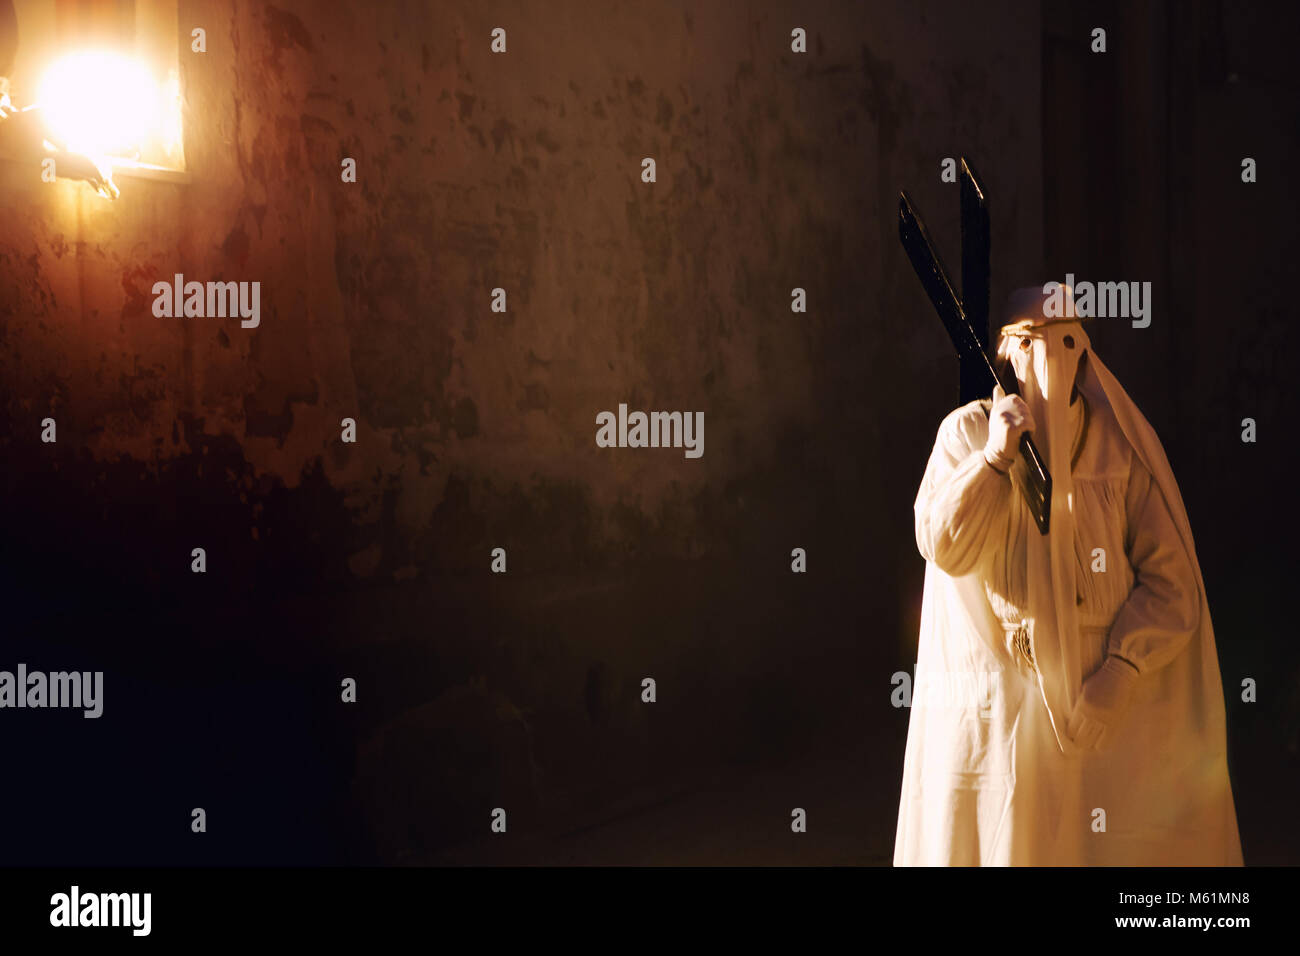 PROCIDA, ITALY - APRIL 10, 2009 - Holy Thursday in Procida is characterized by a series of intense Easter's - Stock Image